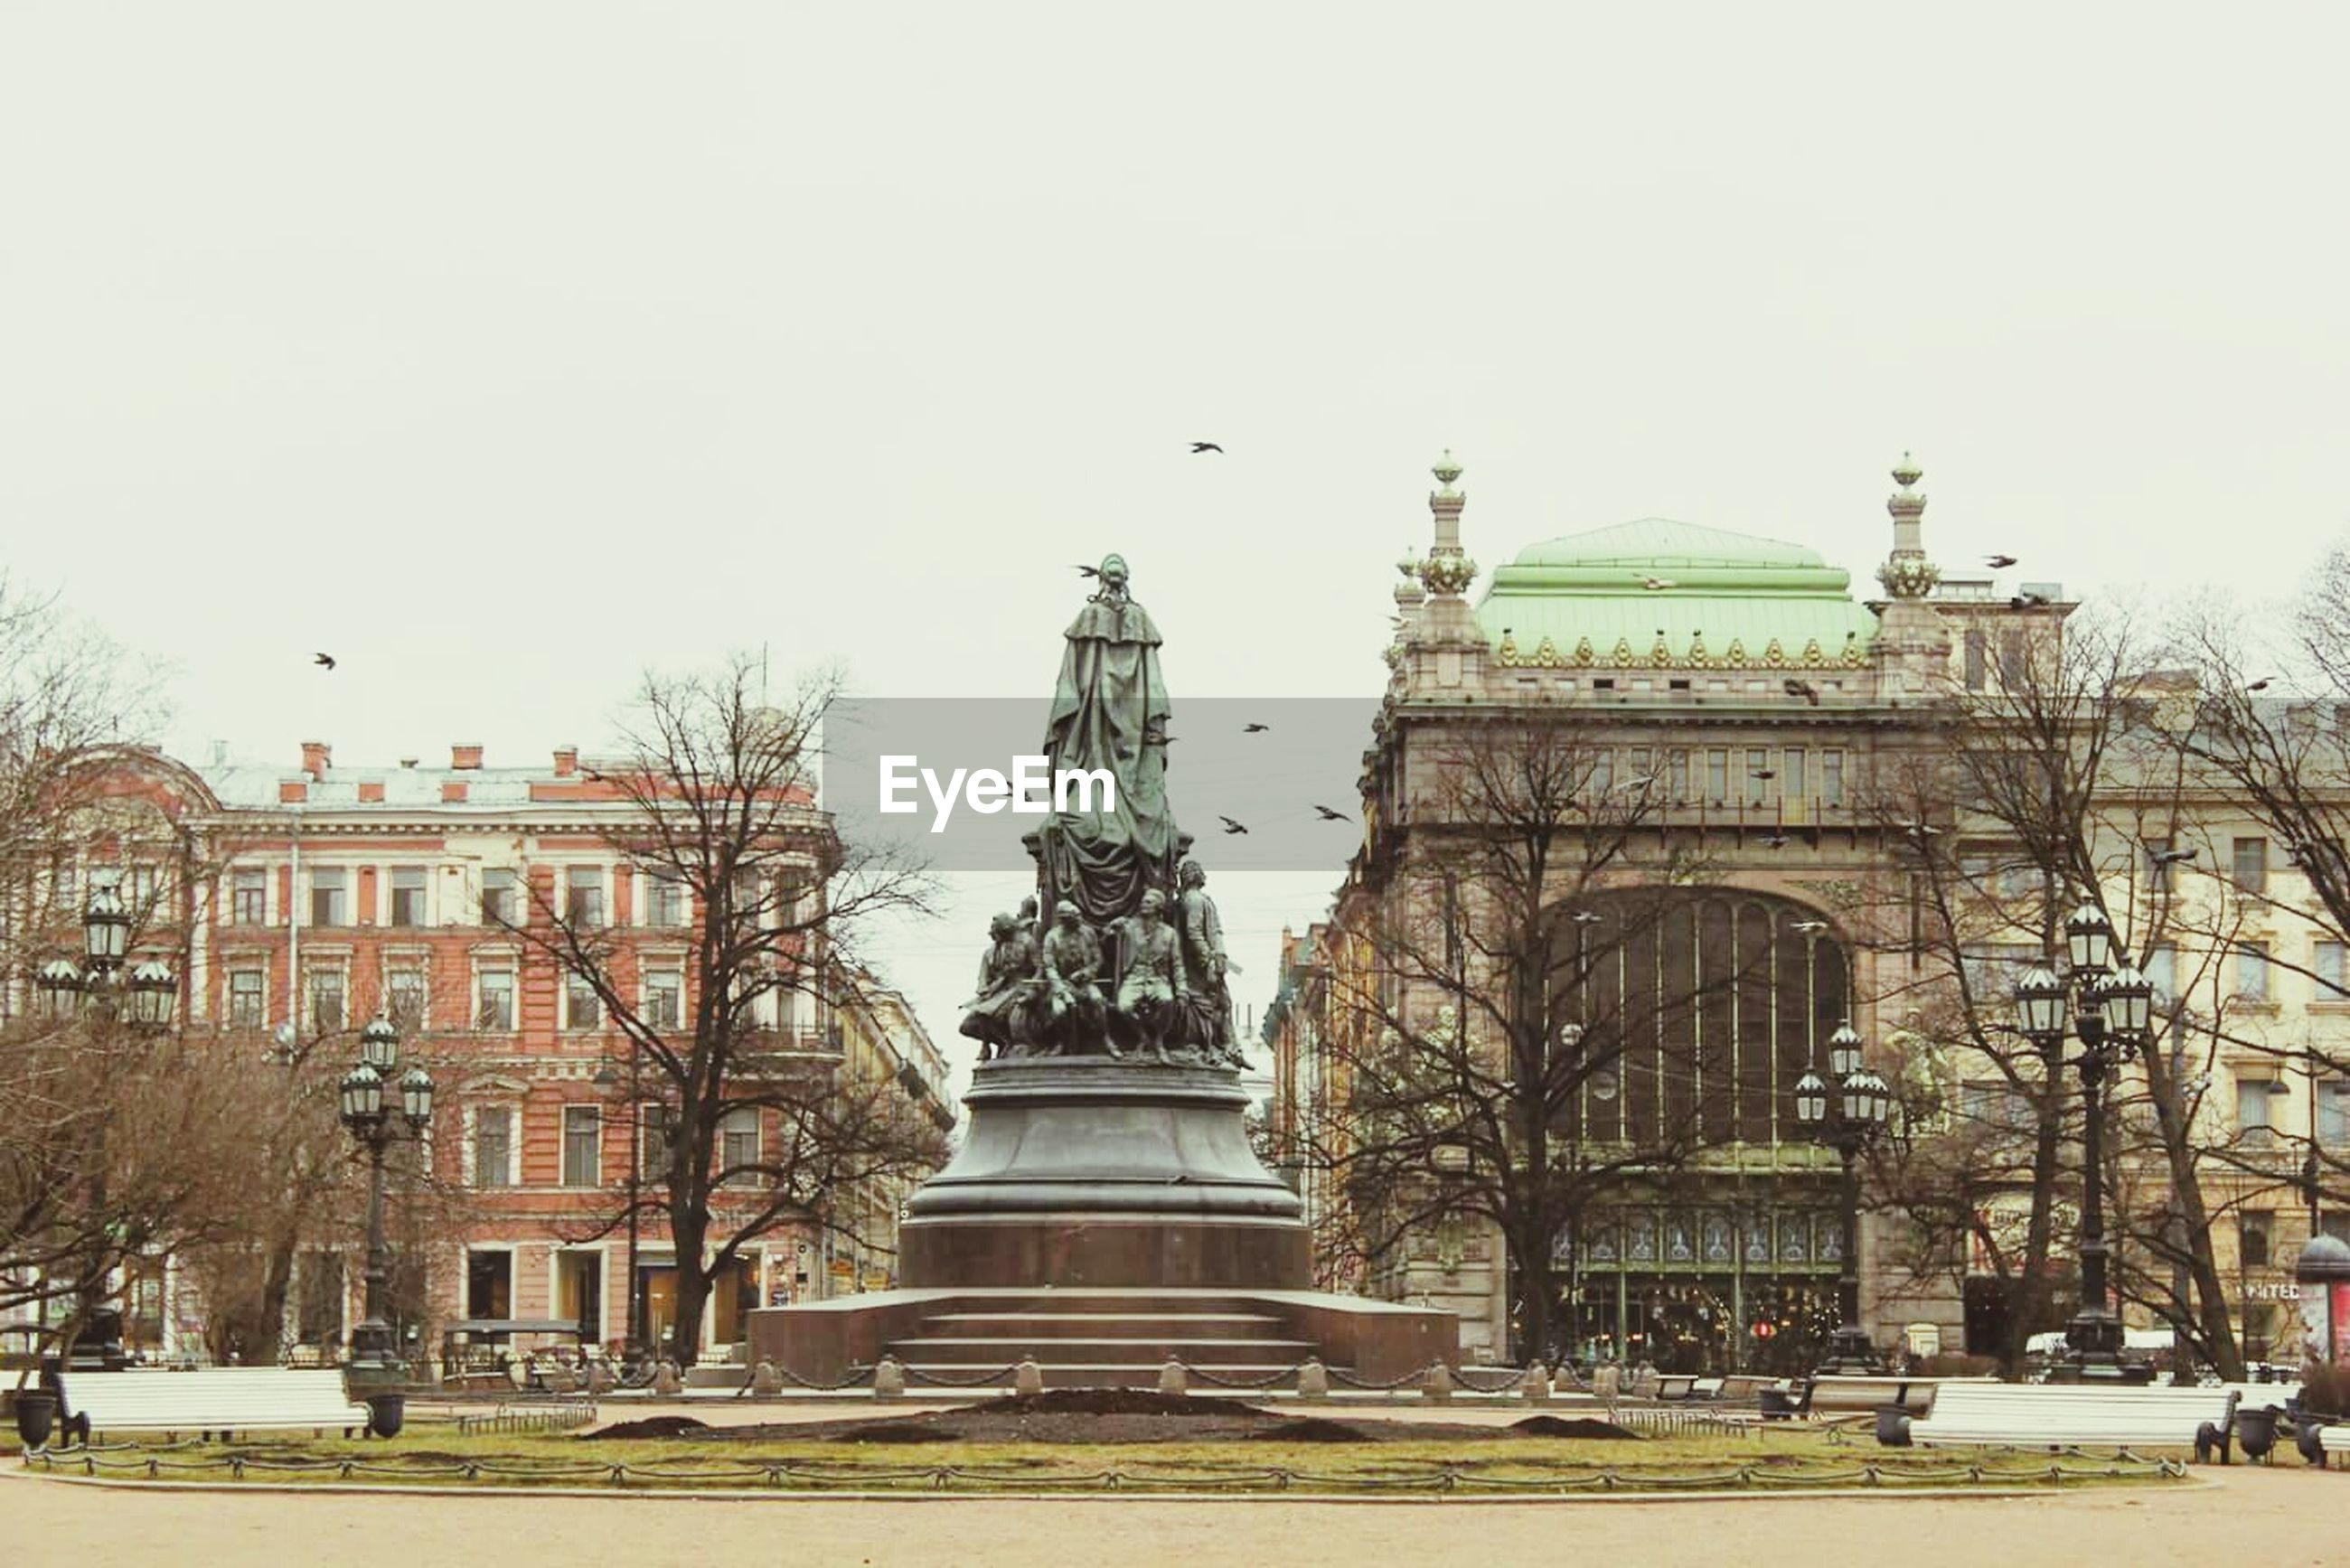 architecture, building exterior, built structure, clear sky, city, statue, bird, sculpture, incidental people, famous place, history, travel destinations, low angle view, travel, capital cities, town square, art and craft, art, human representation, day